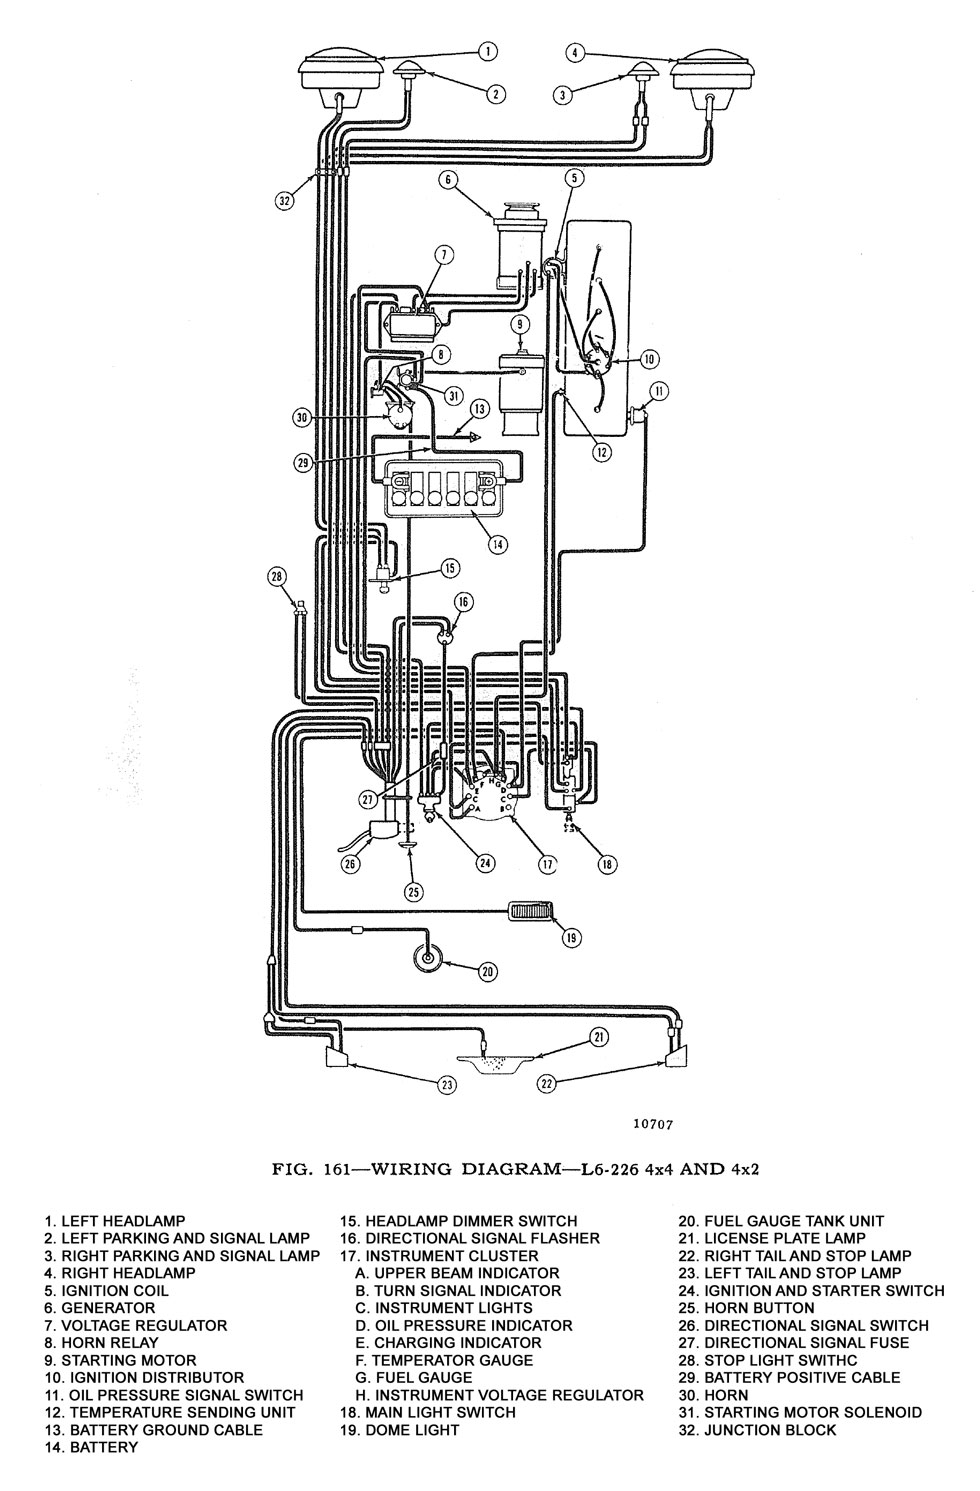 hight resolution of wiring diagram l6 226 4x4 and 4x2 57 willys wiring diagram